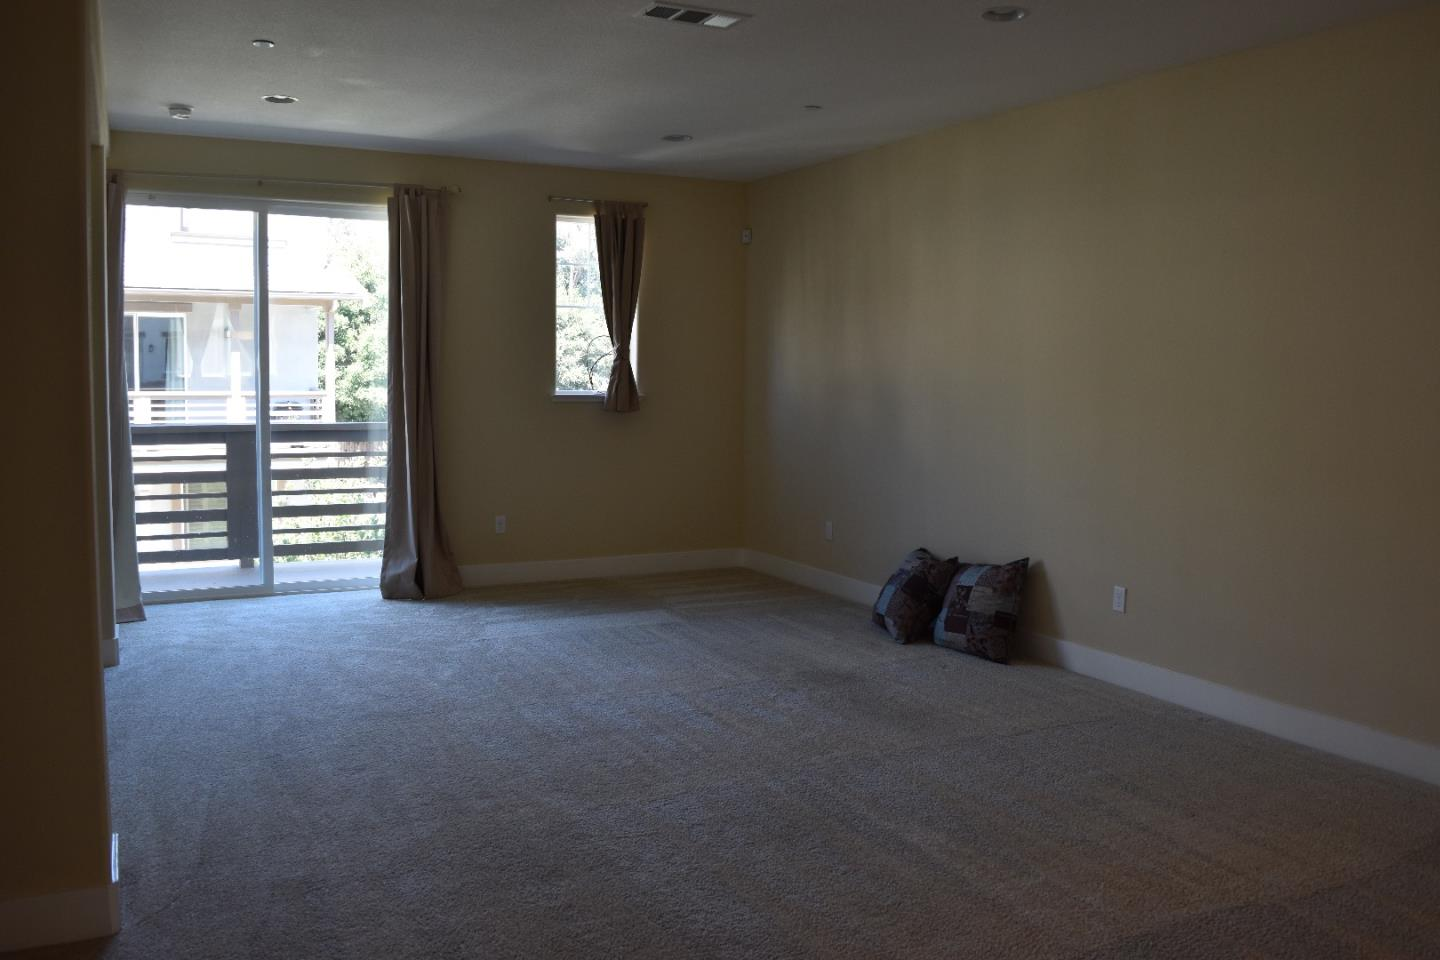 Additional photo for property listing at 17030 Saint Anne Lane 17030 Saint Anne Lane Morgan Hill, California 95037 United States